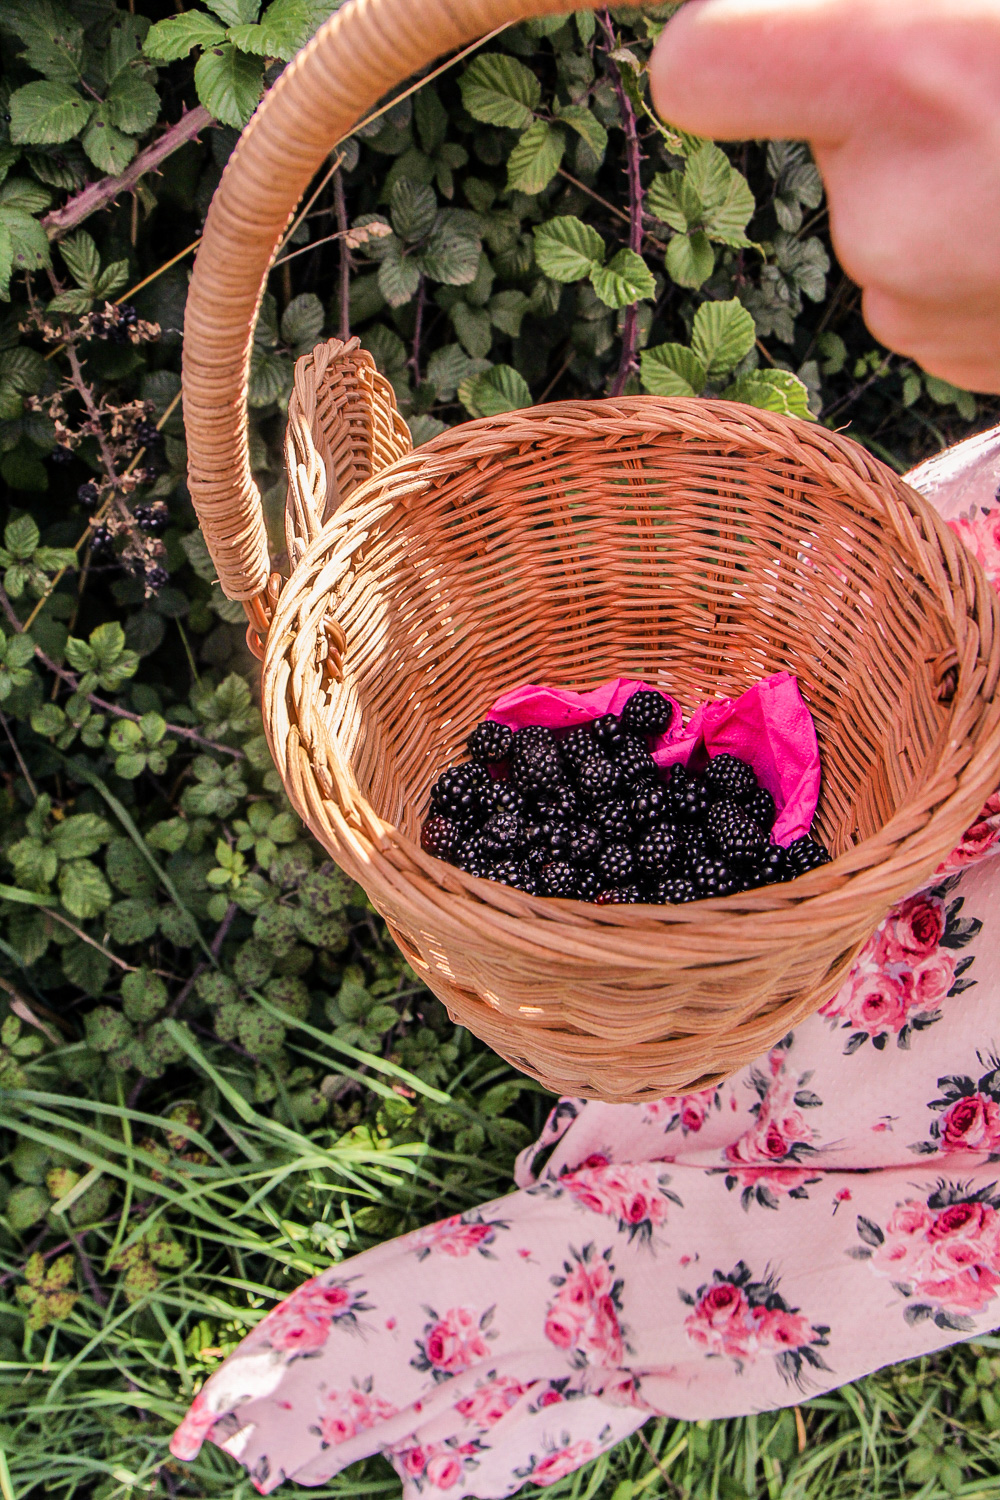 blackberries in a small basket